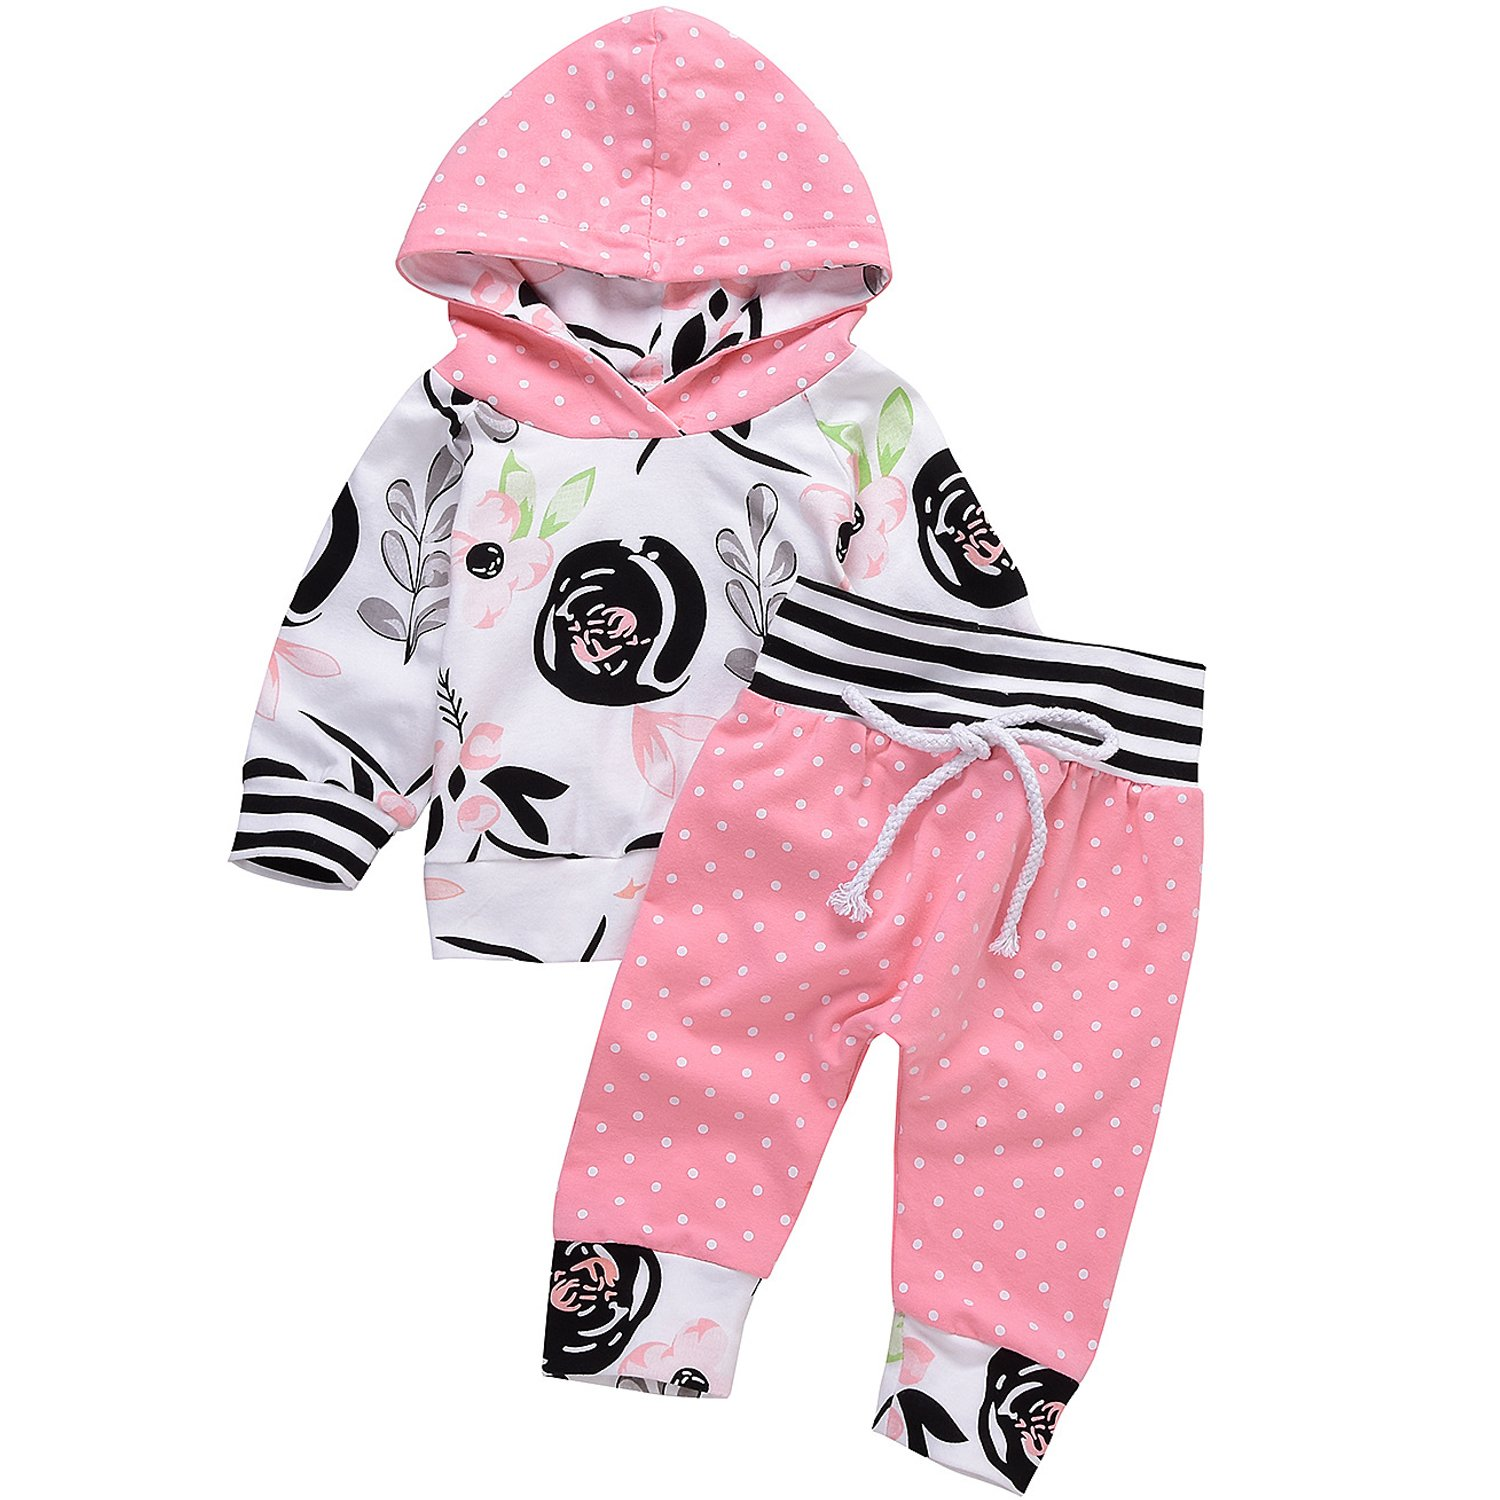 Baby Girls Sweatshirt Sets Floral Hoodie Tops Pants Sweatsuits Pocket Jogger Outfit Xiangwu